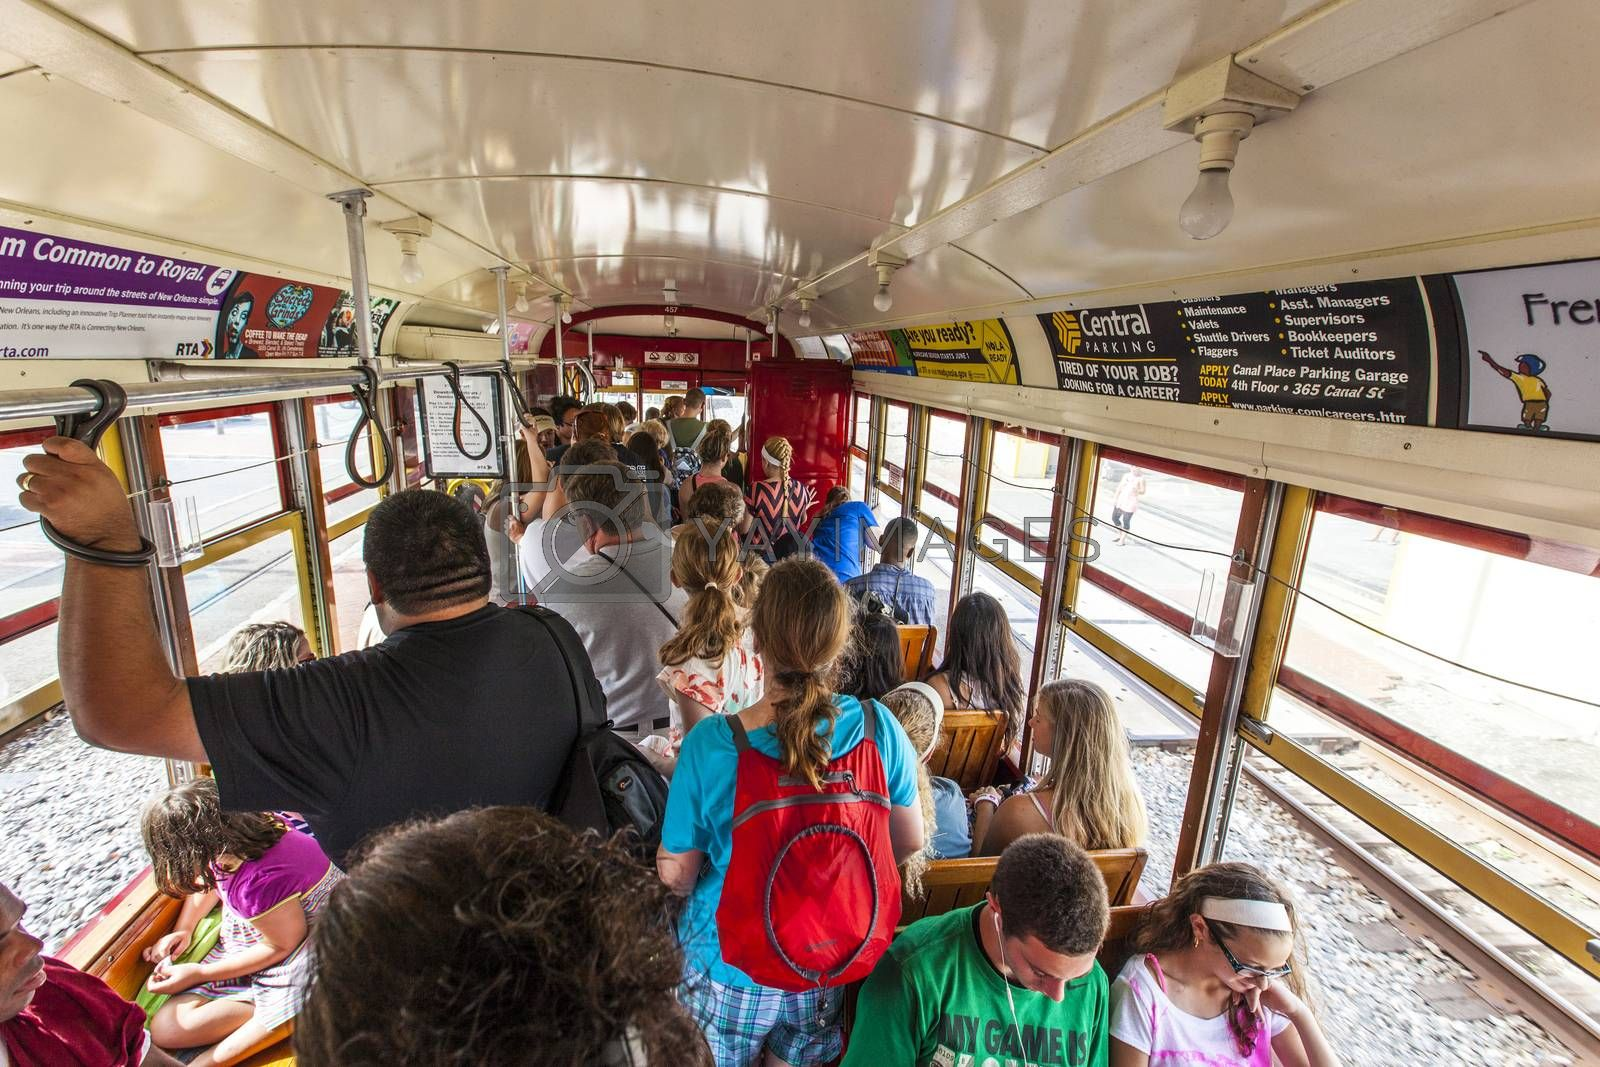 NEW ORLEANS, USA - JULY 16, 2013: people ride in the riverfront  Streetcar Line in New Orleans, USA. Revamped after Hurricane Katrina in 2005, the New Orleans Streetcar line began electric operation in 1893.